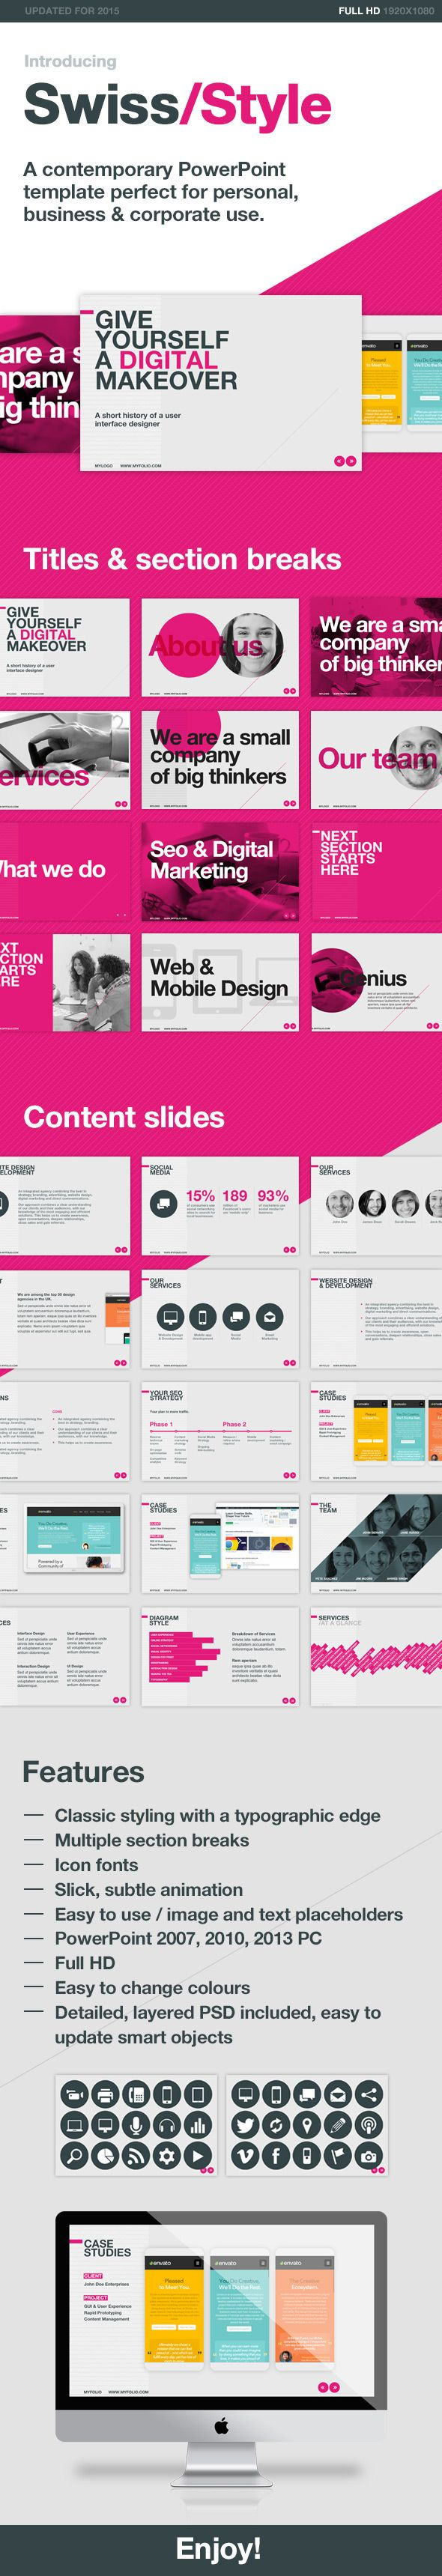 a contemporary powerpoint template perfect for personal, business, Powerpoint templates